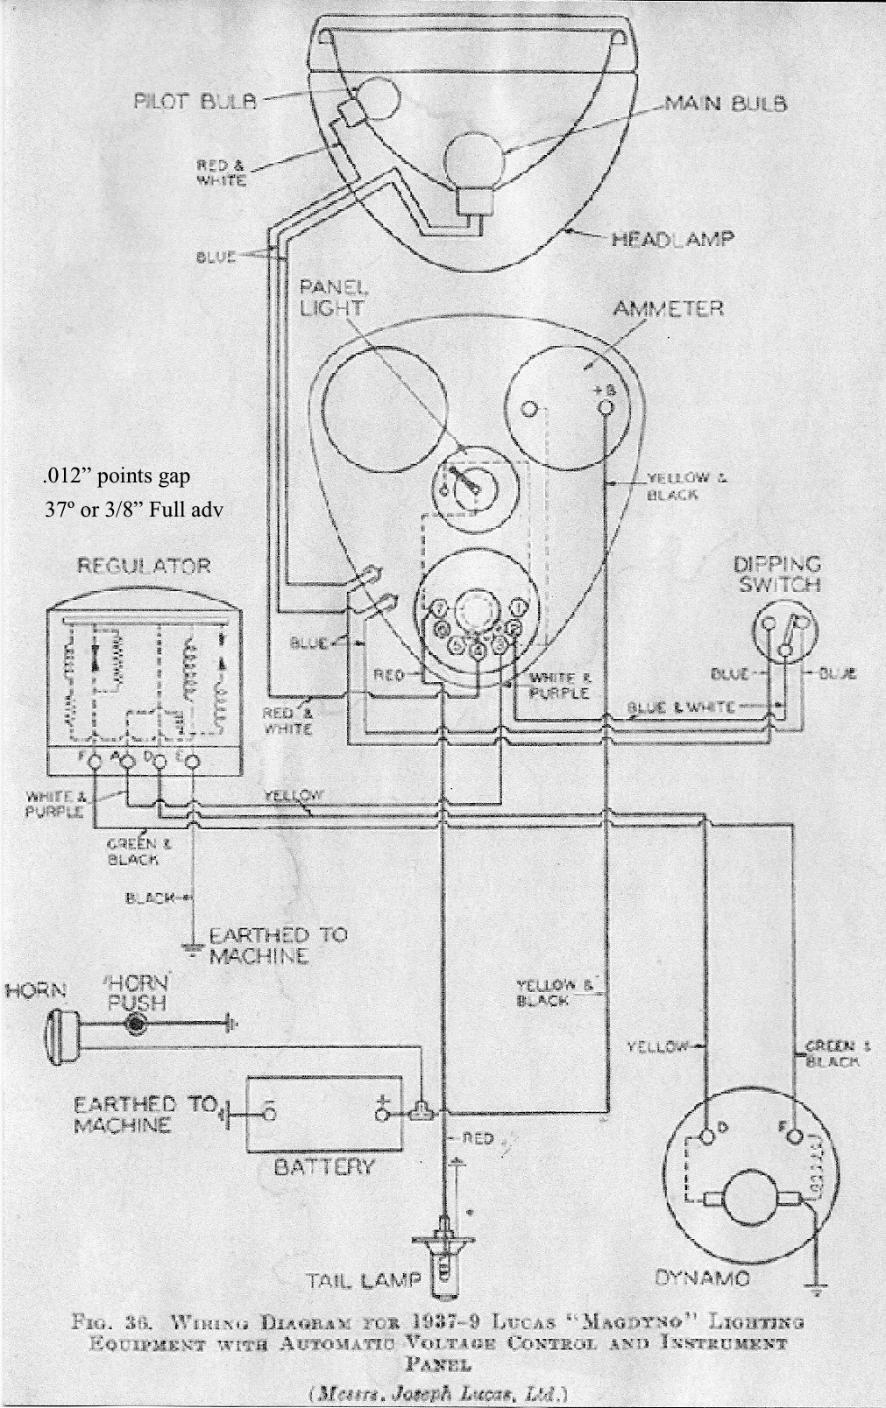 [WRG-4274] Triumph Motorcycle Ignition Switch Wiring Diagram